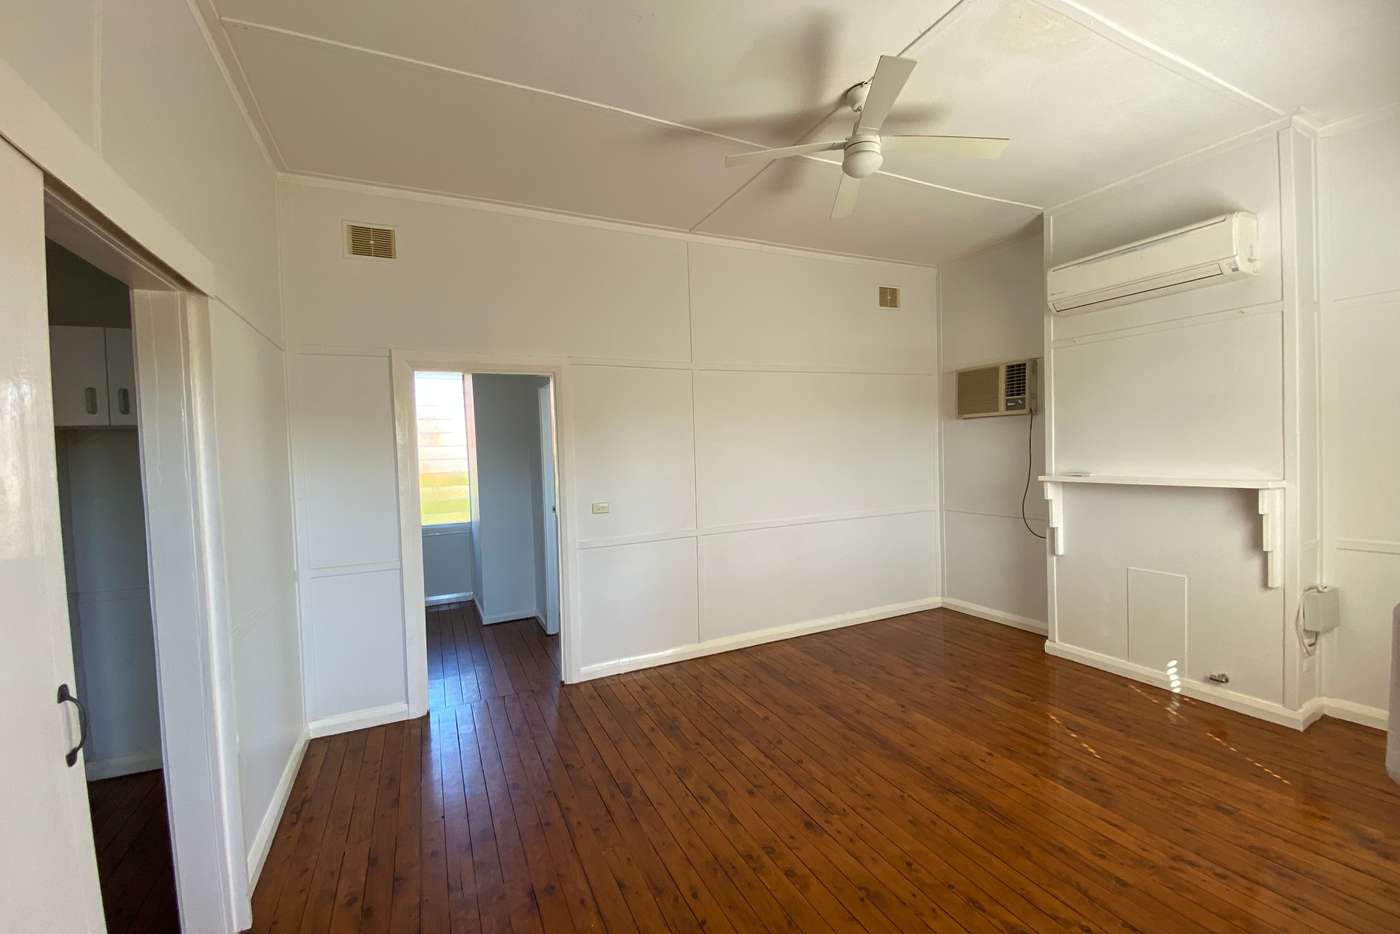 Sixth view of Homely house listing, 4 Rawson Street, Dubbo NSW 2830